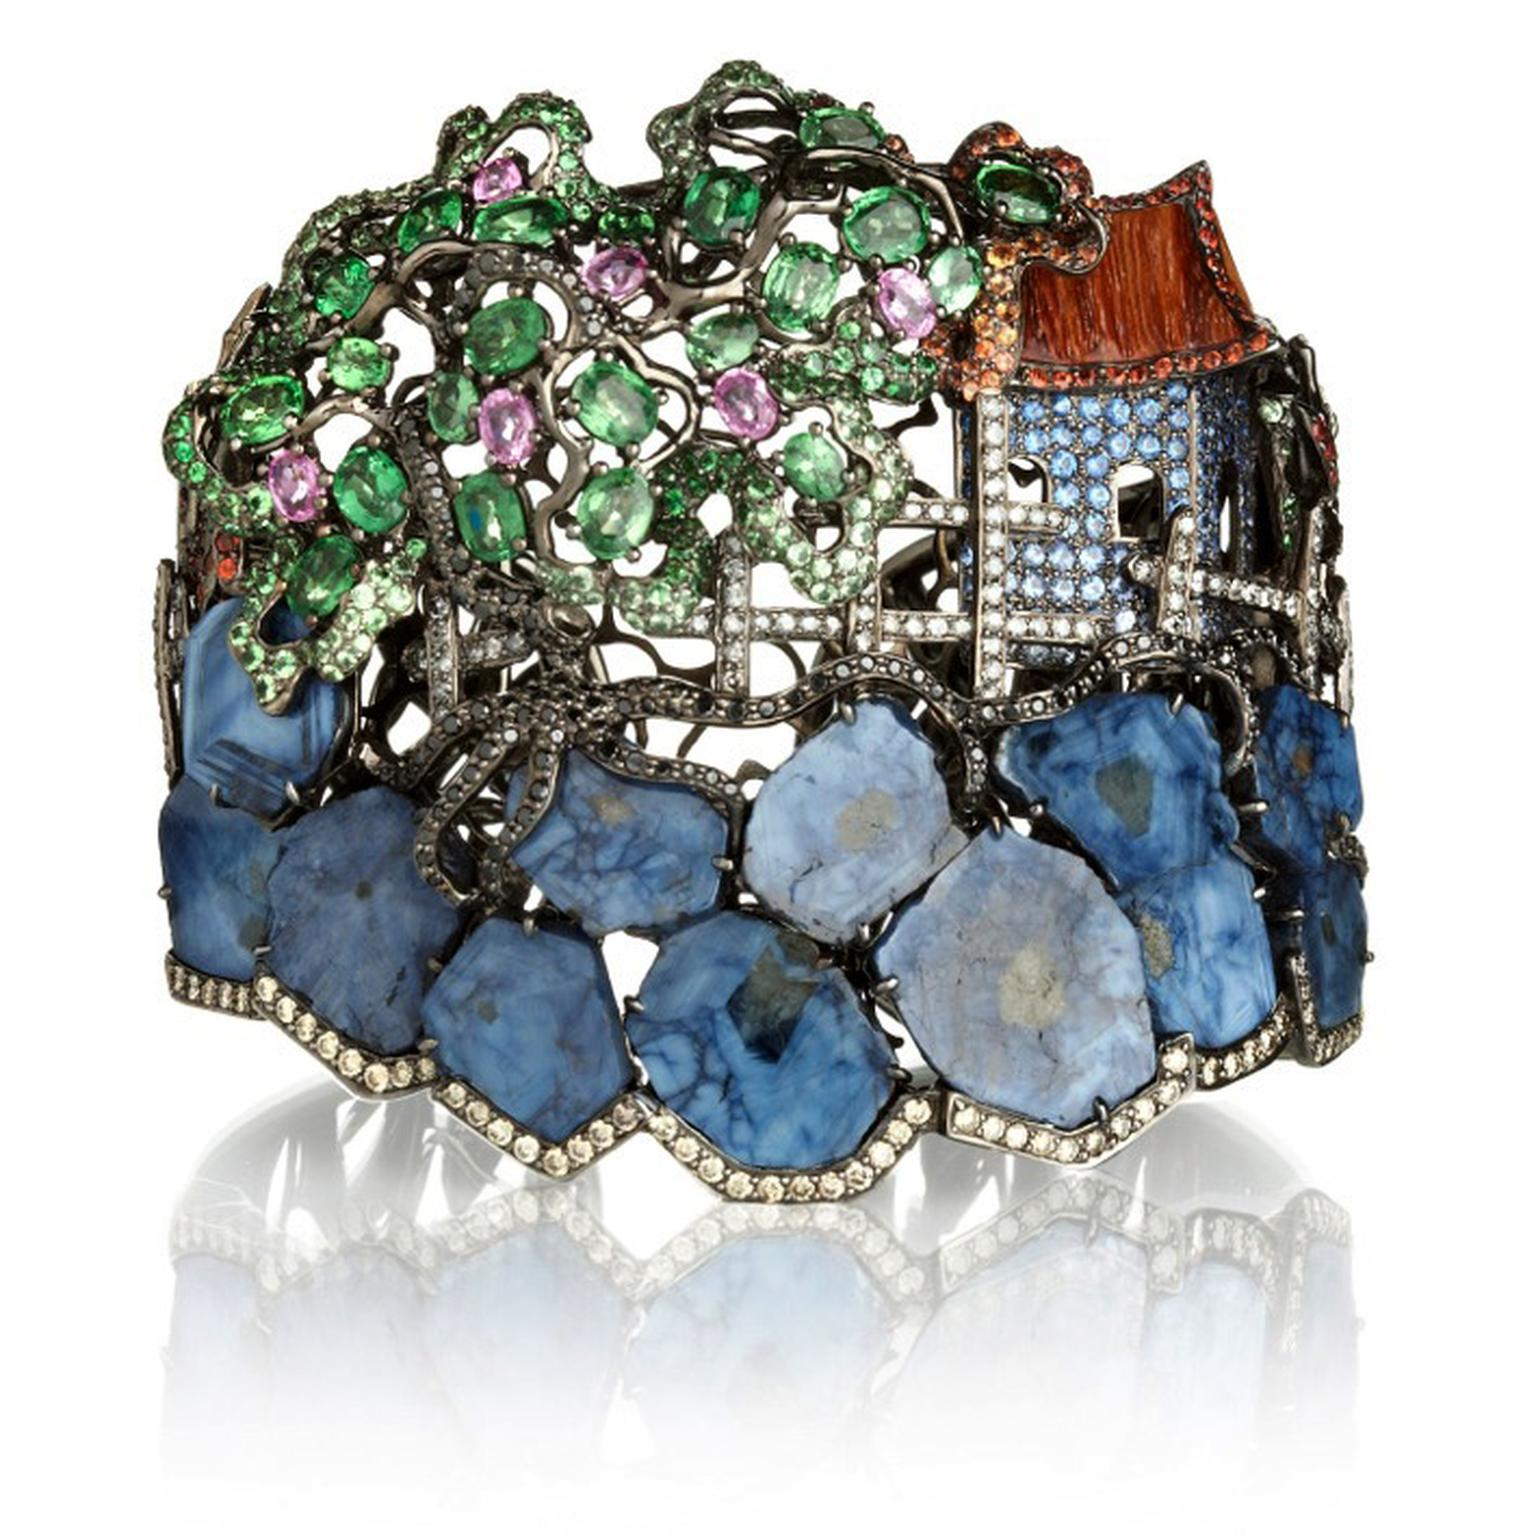 Wendy-Yue-Fantasie-18ct-white-gold--diamondsapphires-and-green-garnet-Madagascar-Retreat-bangle-By-Wendy-Yue--for-Annoushka.jpg